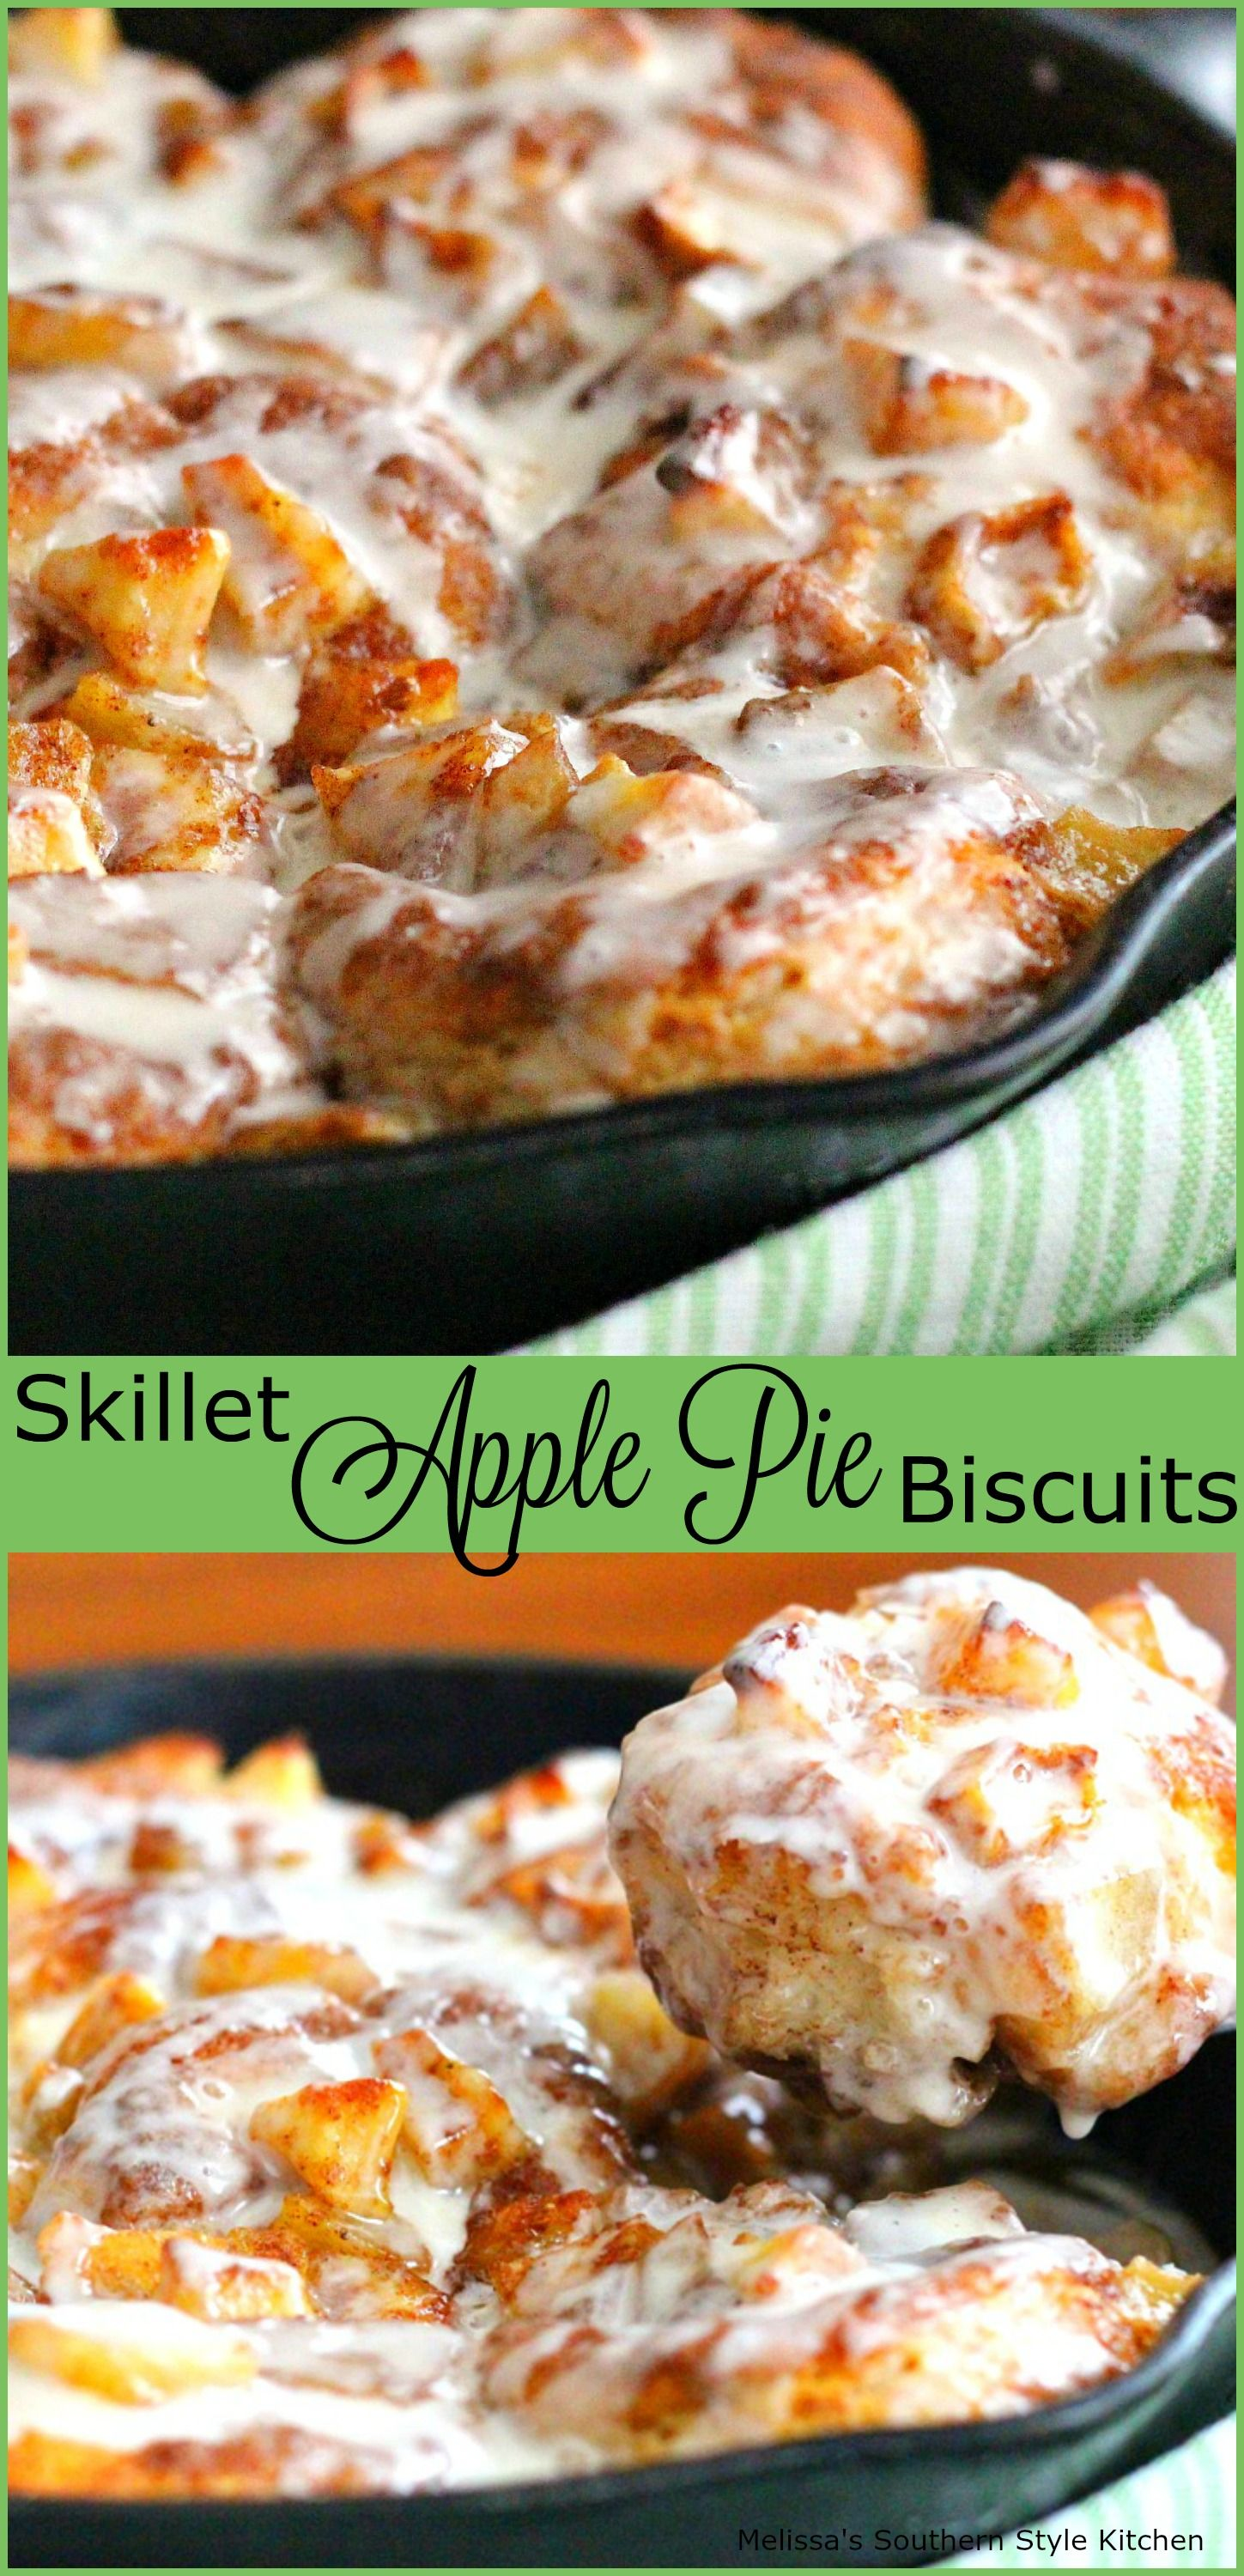 Photo of Skillet Apple Pie Biscuits